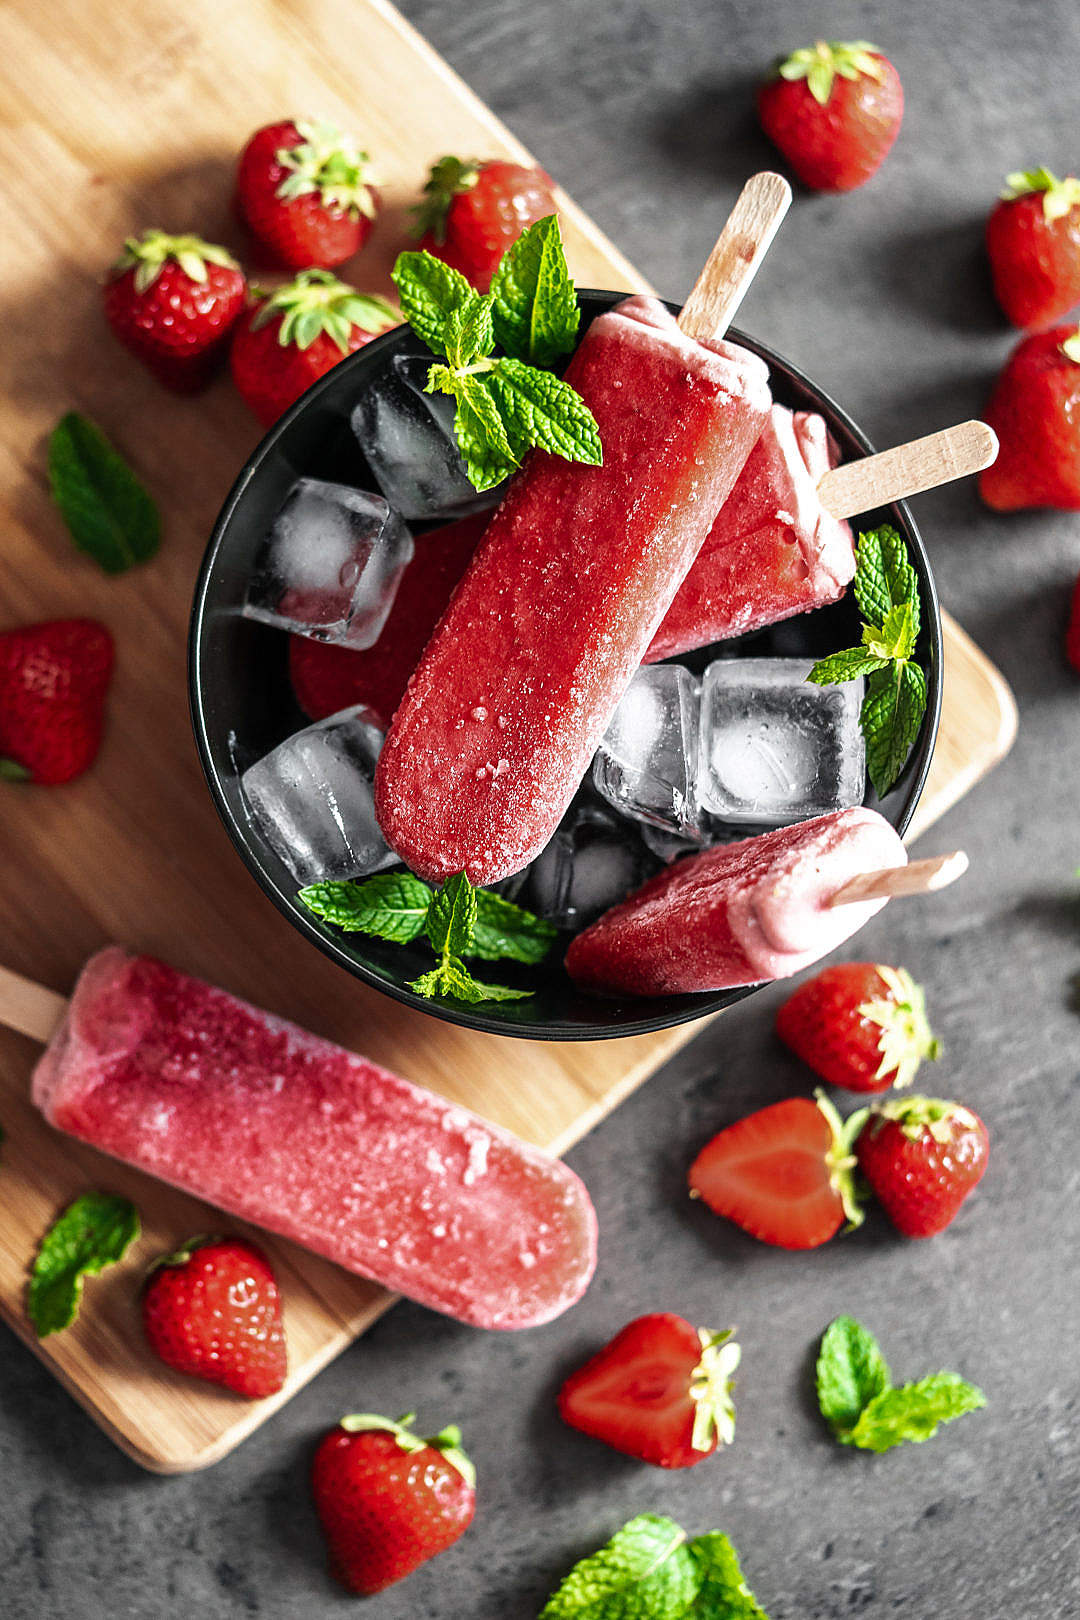 Download Tasty Ice Pops with Fresh Strawberries FREE Stock Photo